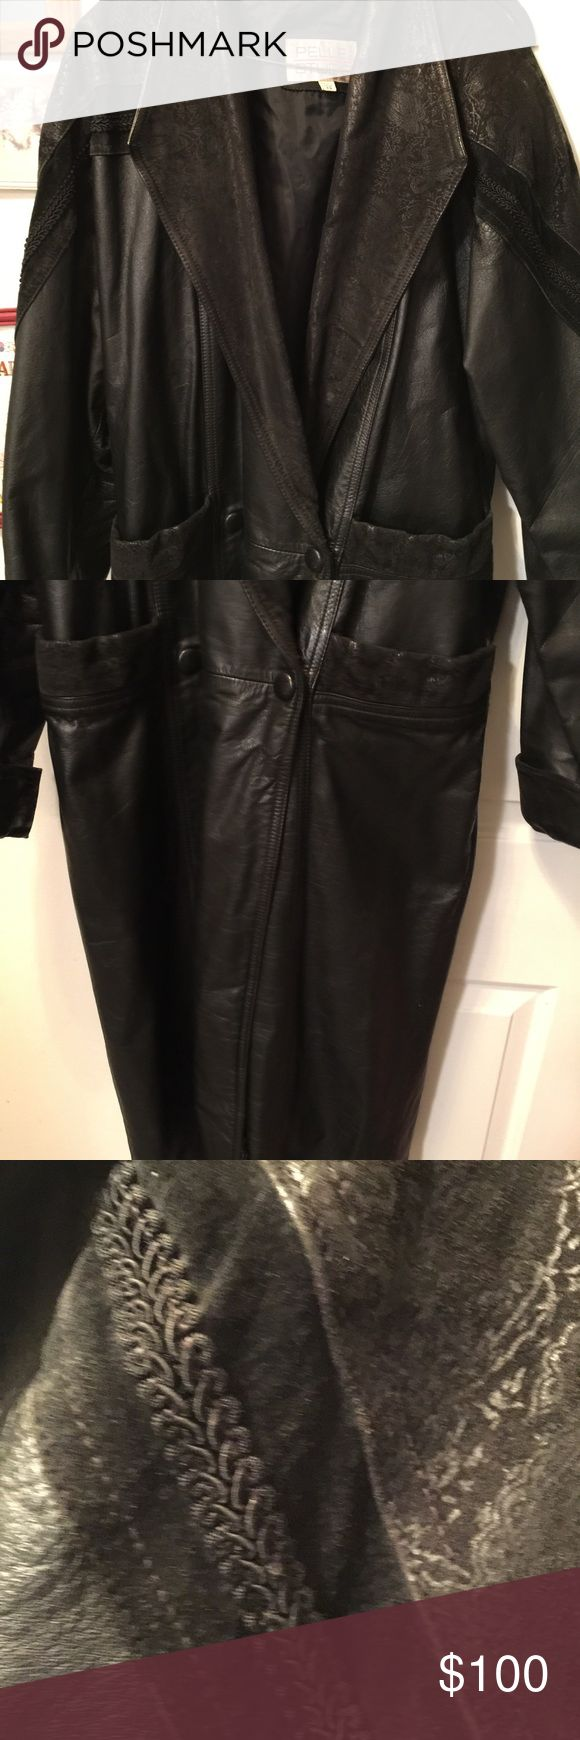 Women's leather coat Beautiful full length black leather coat with suede & braided design, see picture, gently used, size XS Pelle Studio Jackets & Coats